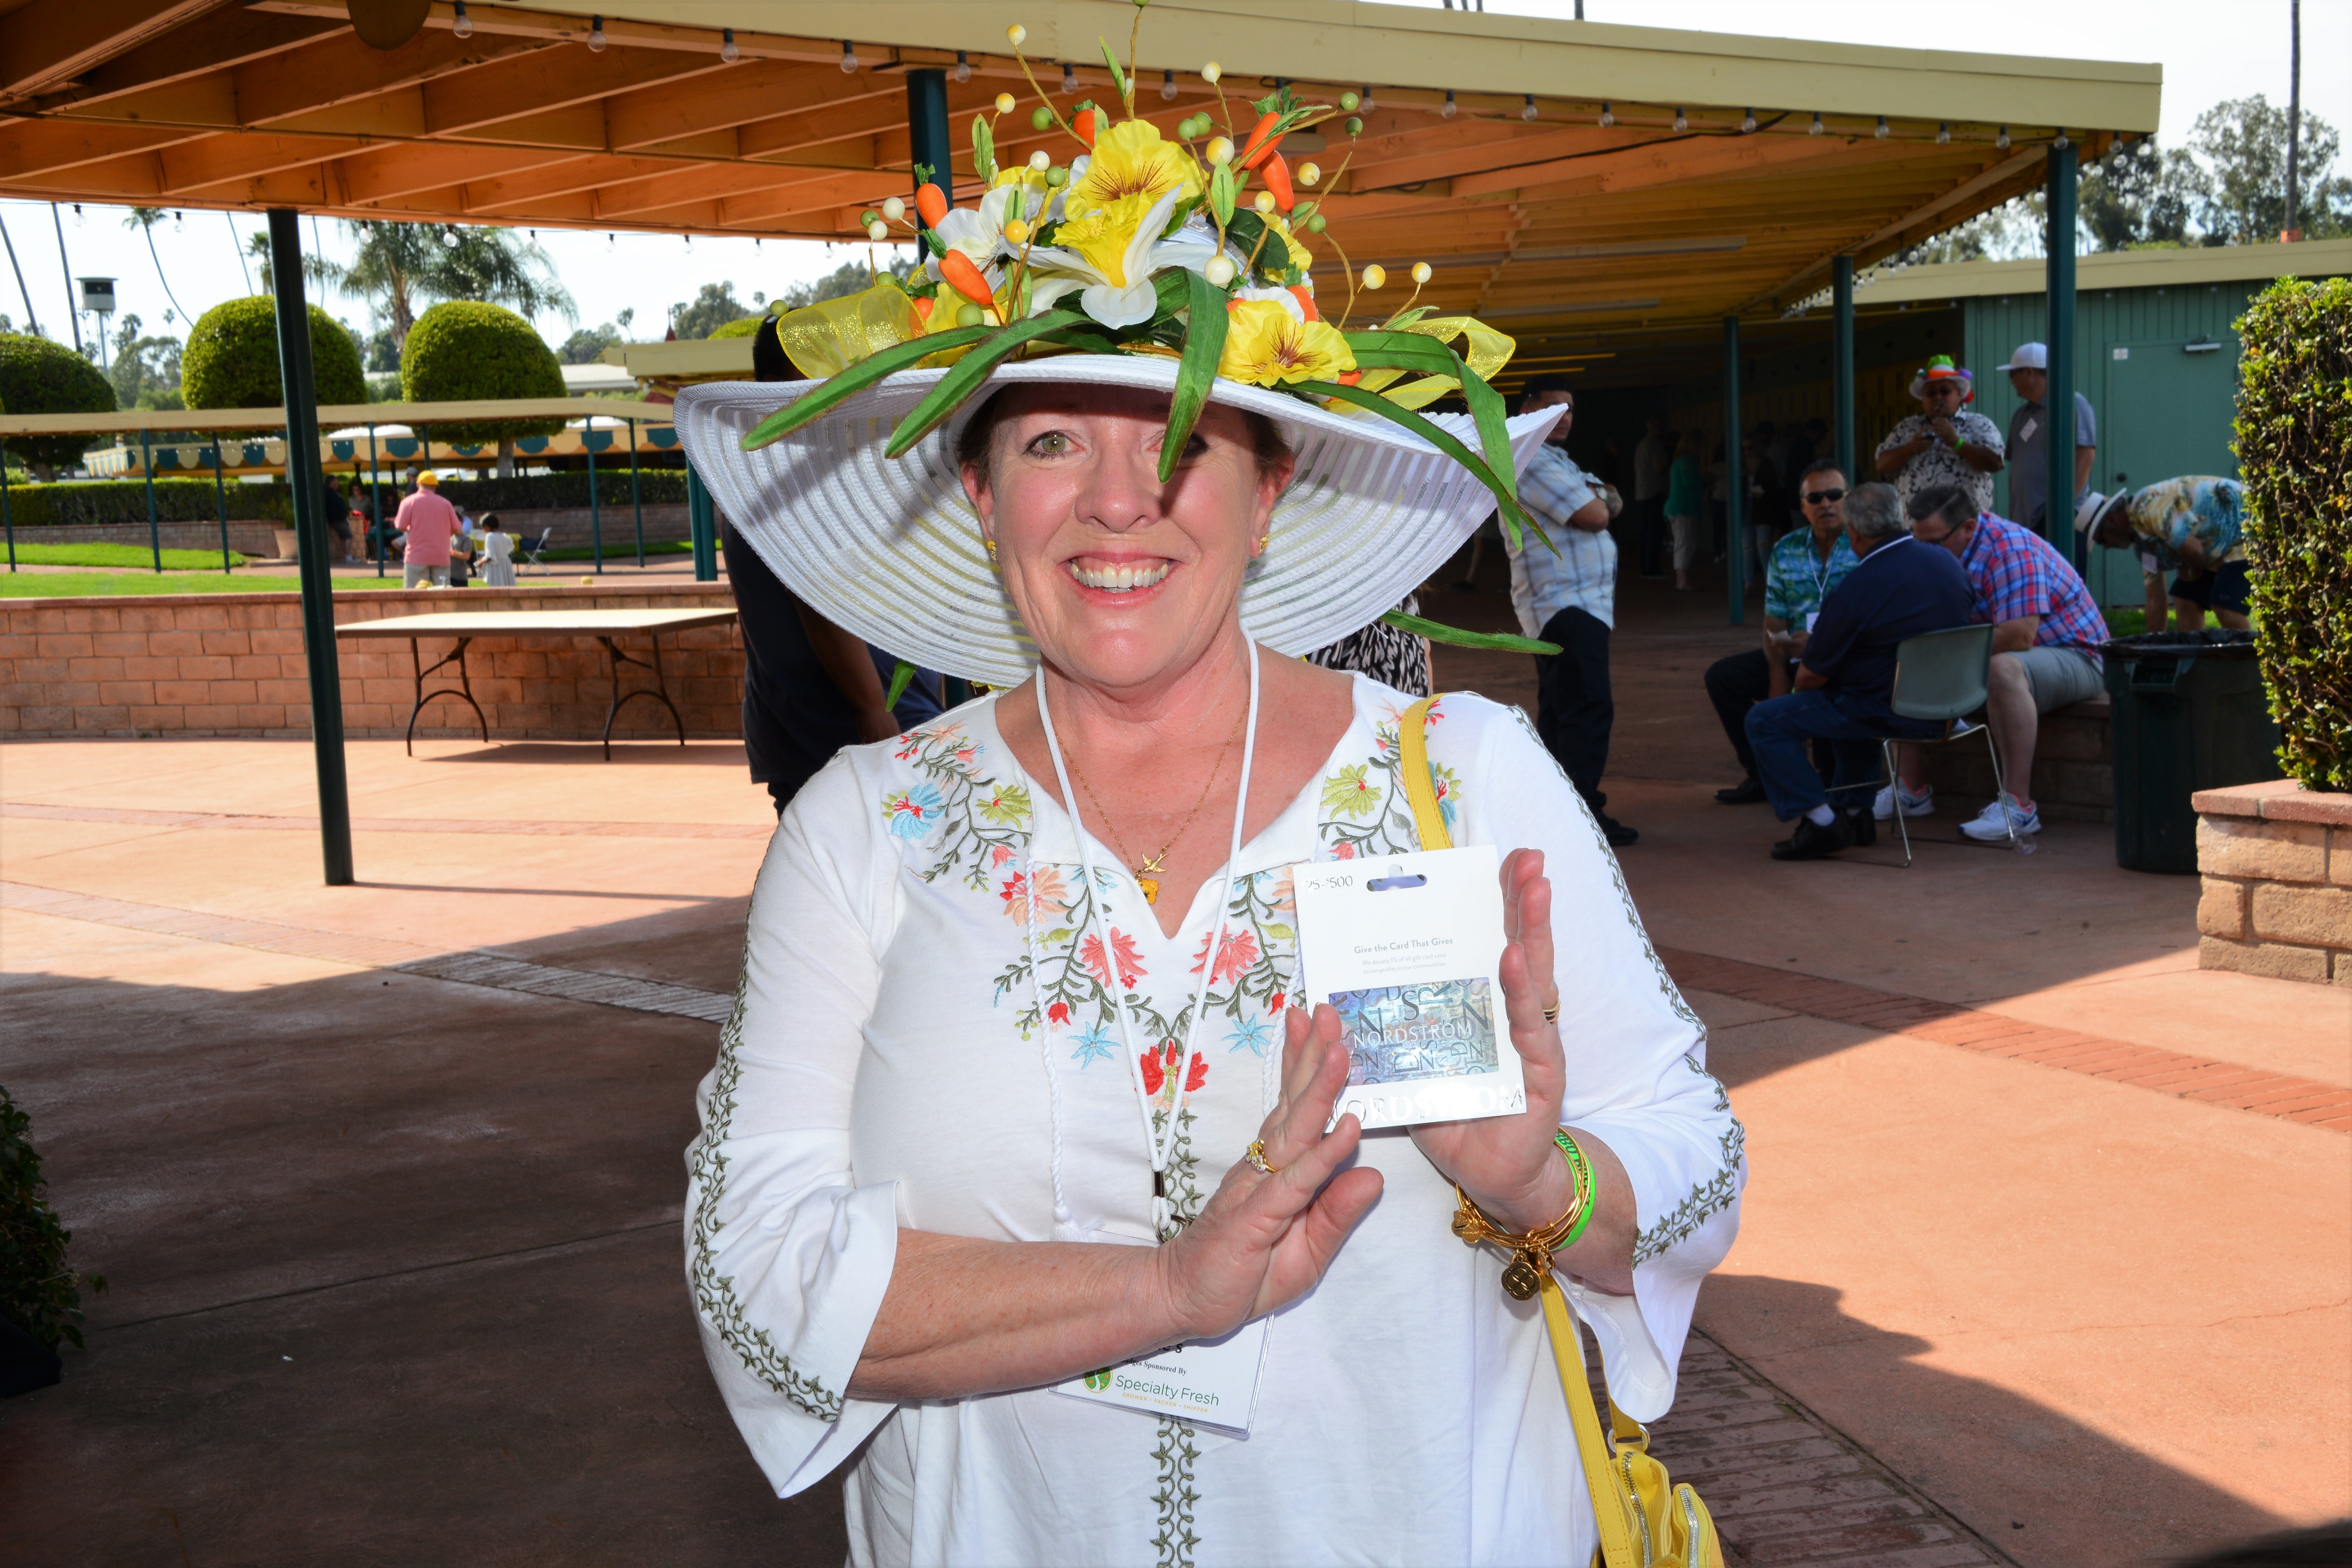 Annie Fortuna from Pete's won the Ladies Hat Contest